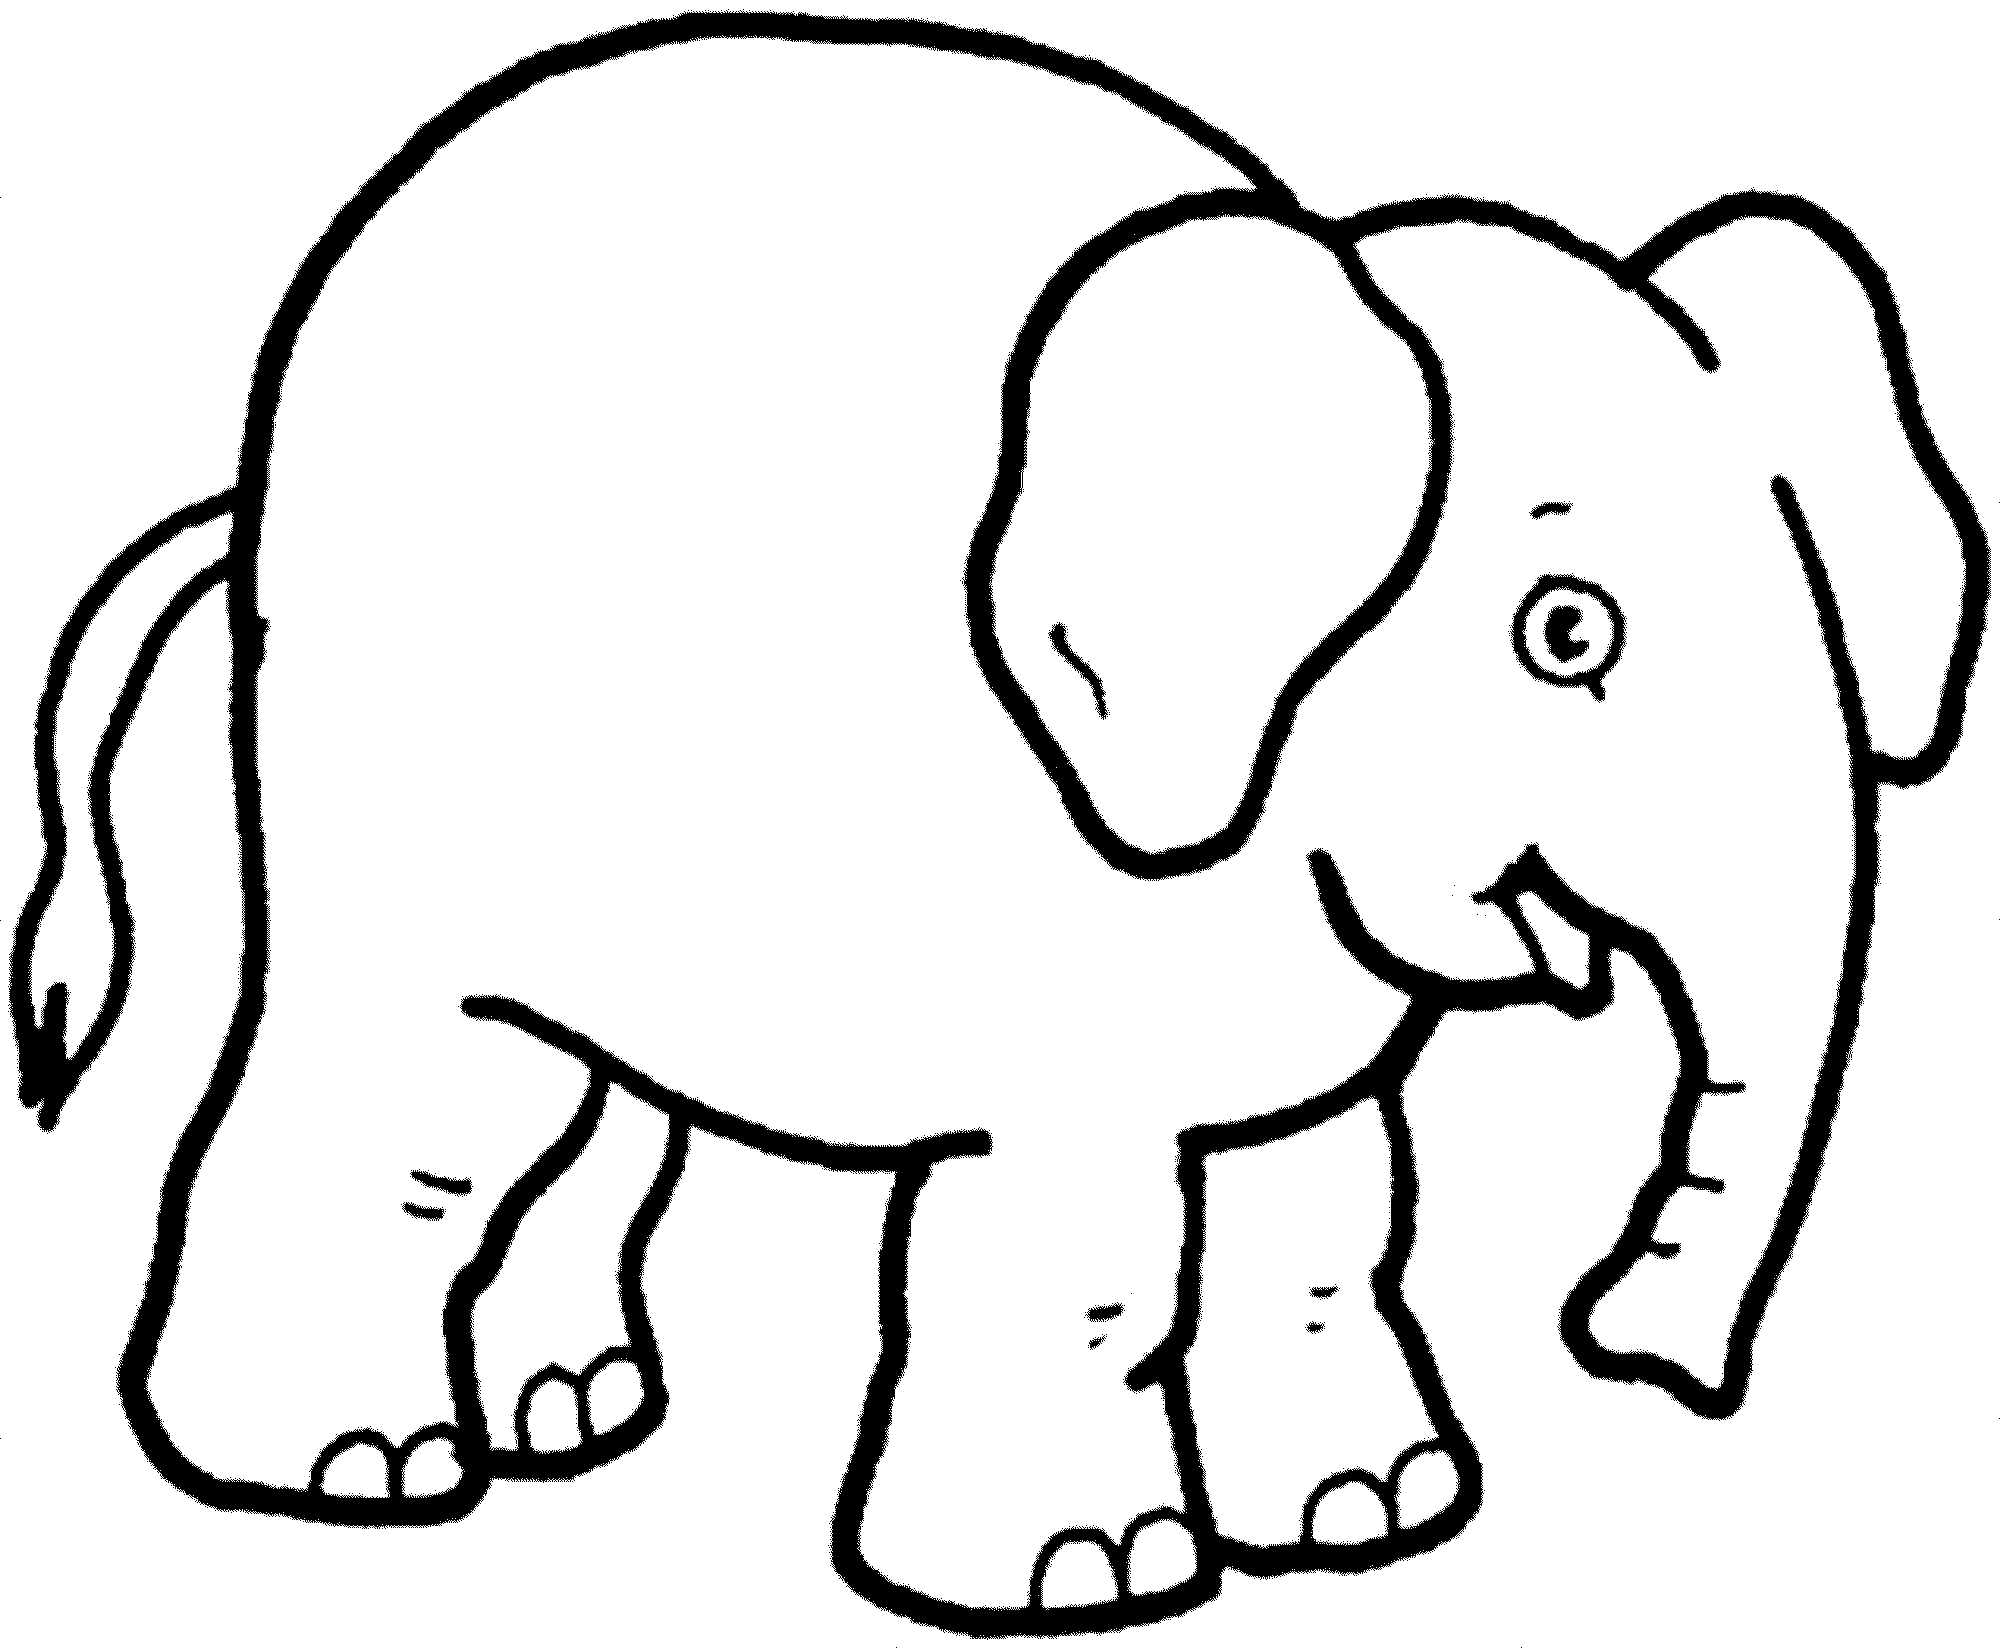 elephant coloring pages print download teaching kids through elephant coloring coloring elephant pages